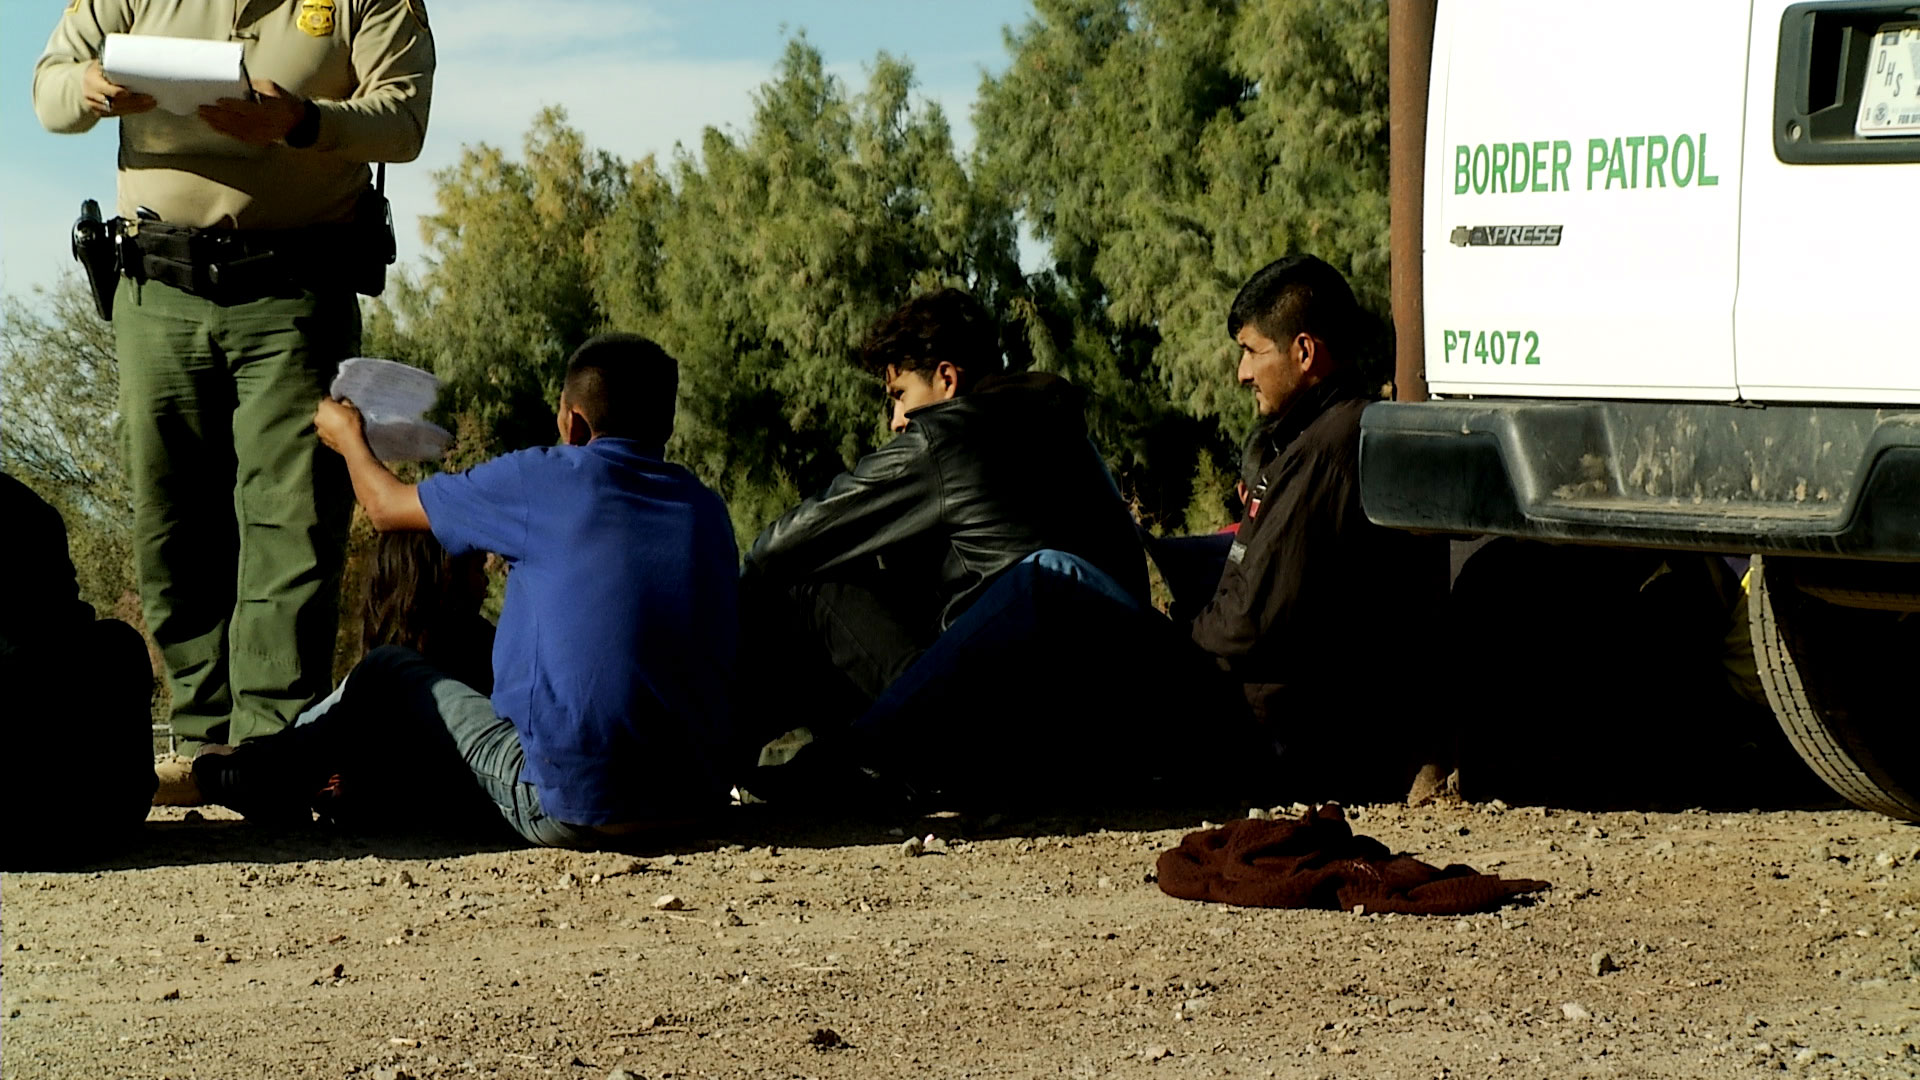 A Border Patrol agent begins processing a group of immigrants apprehended in Yuma in December 2018.